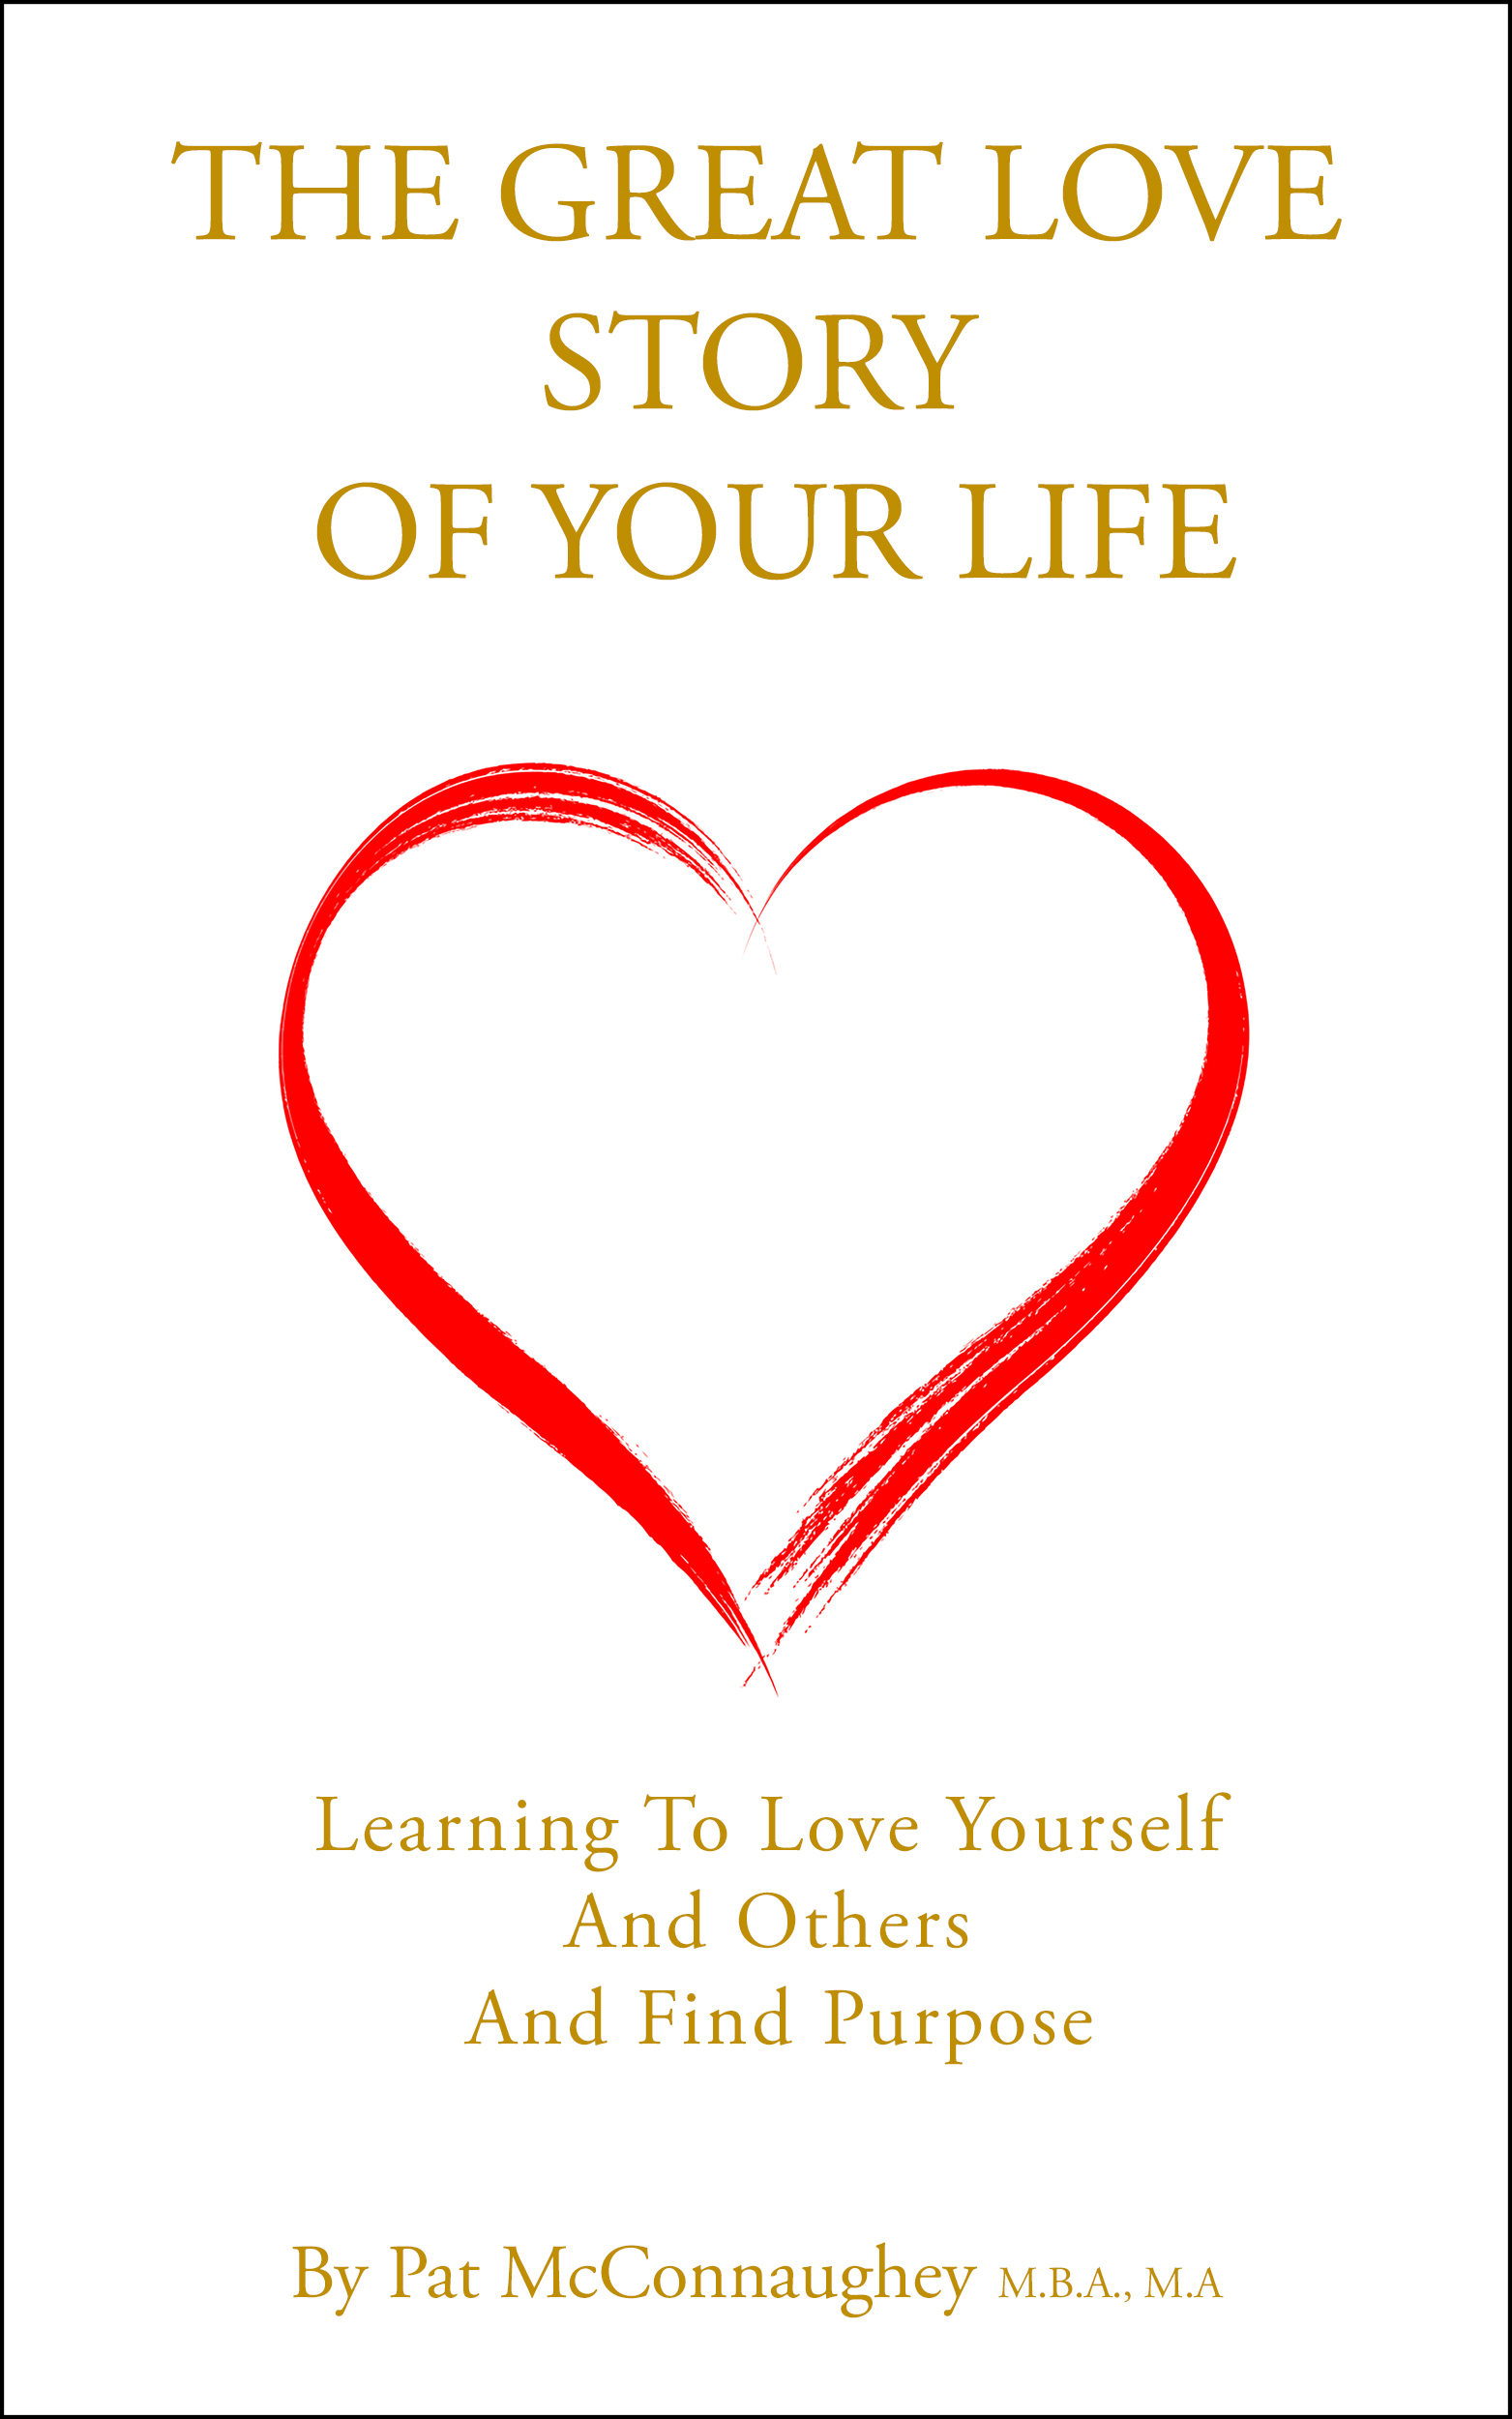 The Great Love Story of Your Life: Learning to Love Yourself and Others and Find Purpose